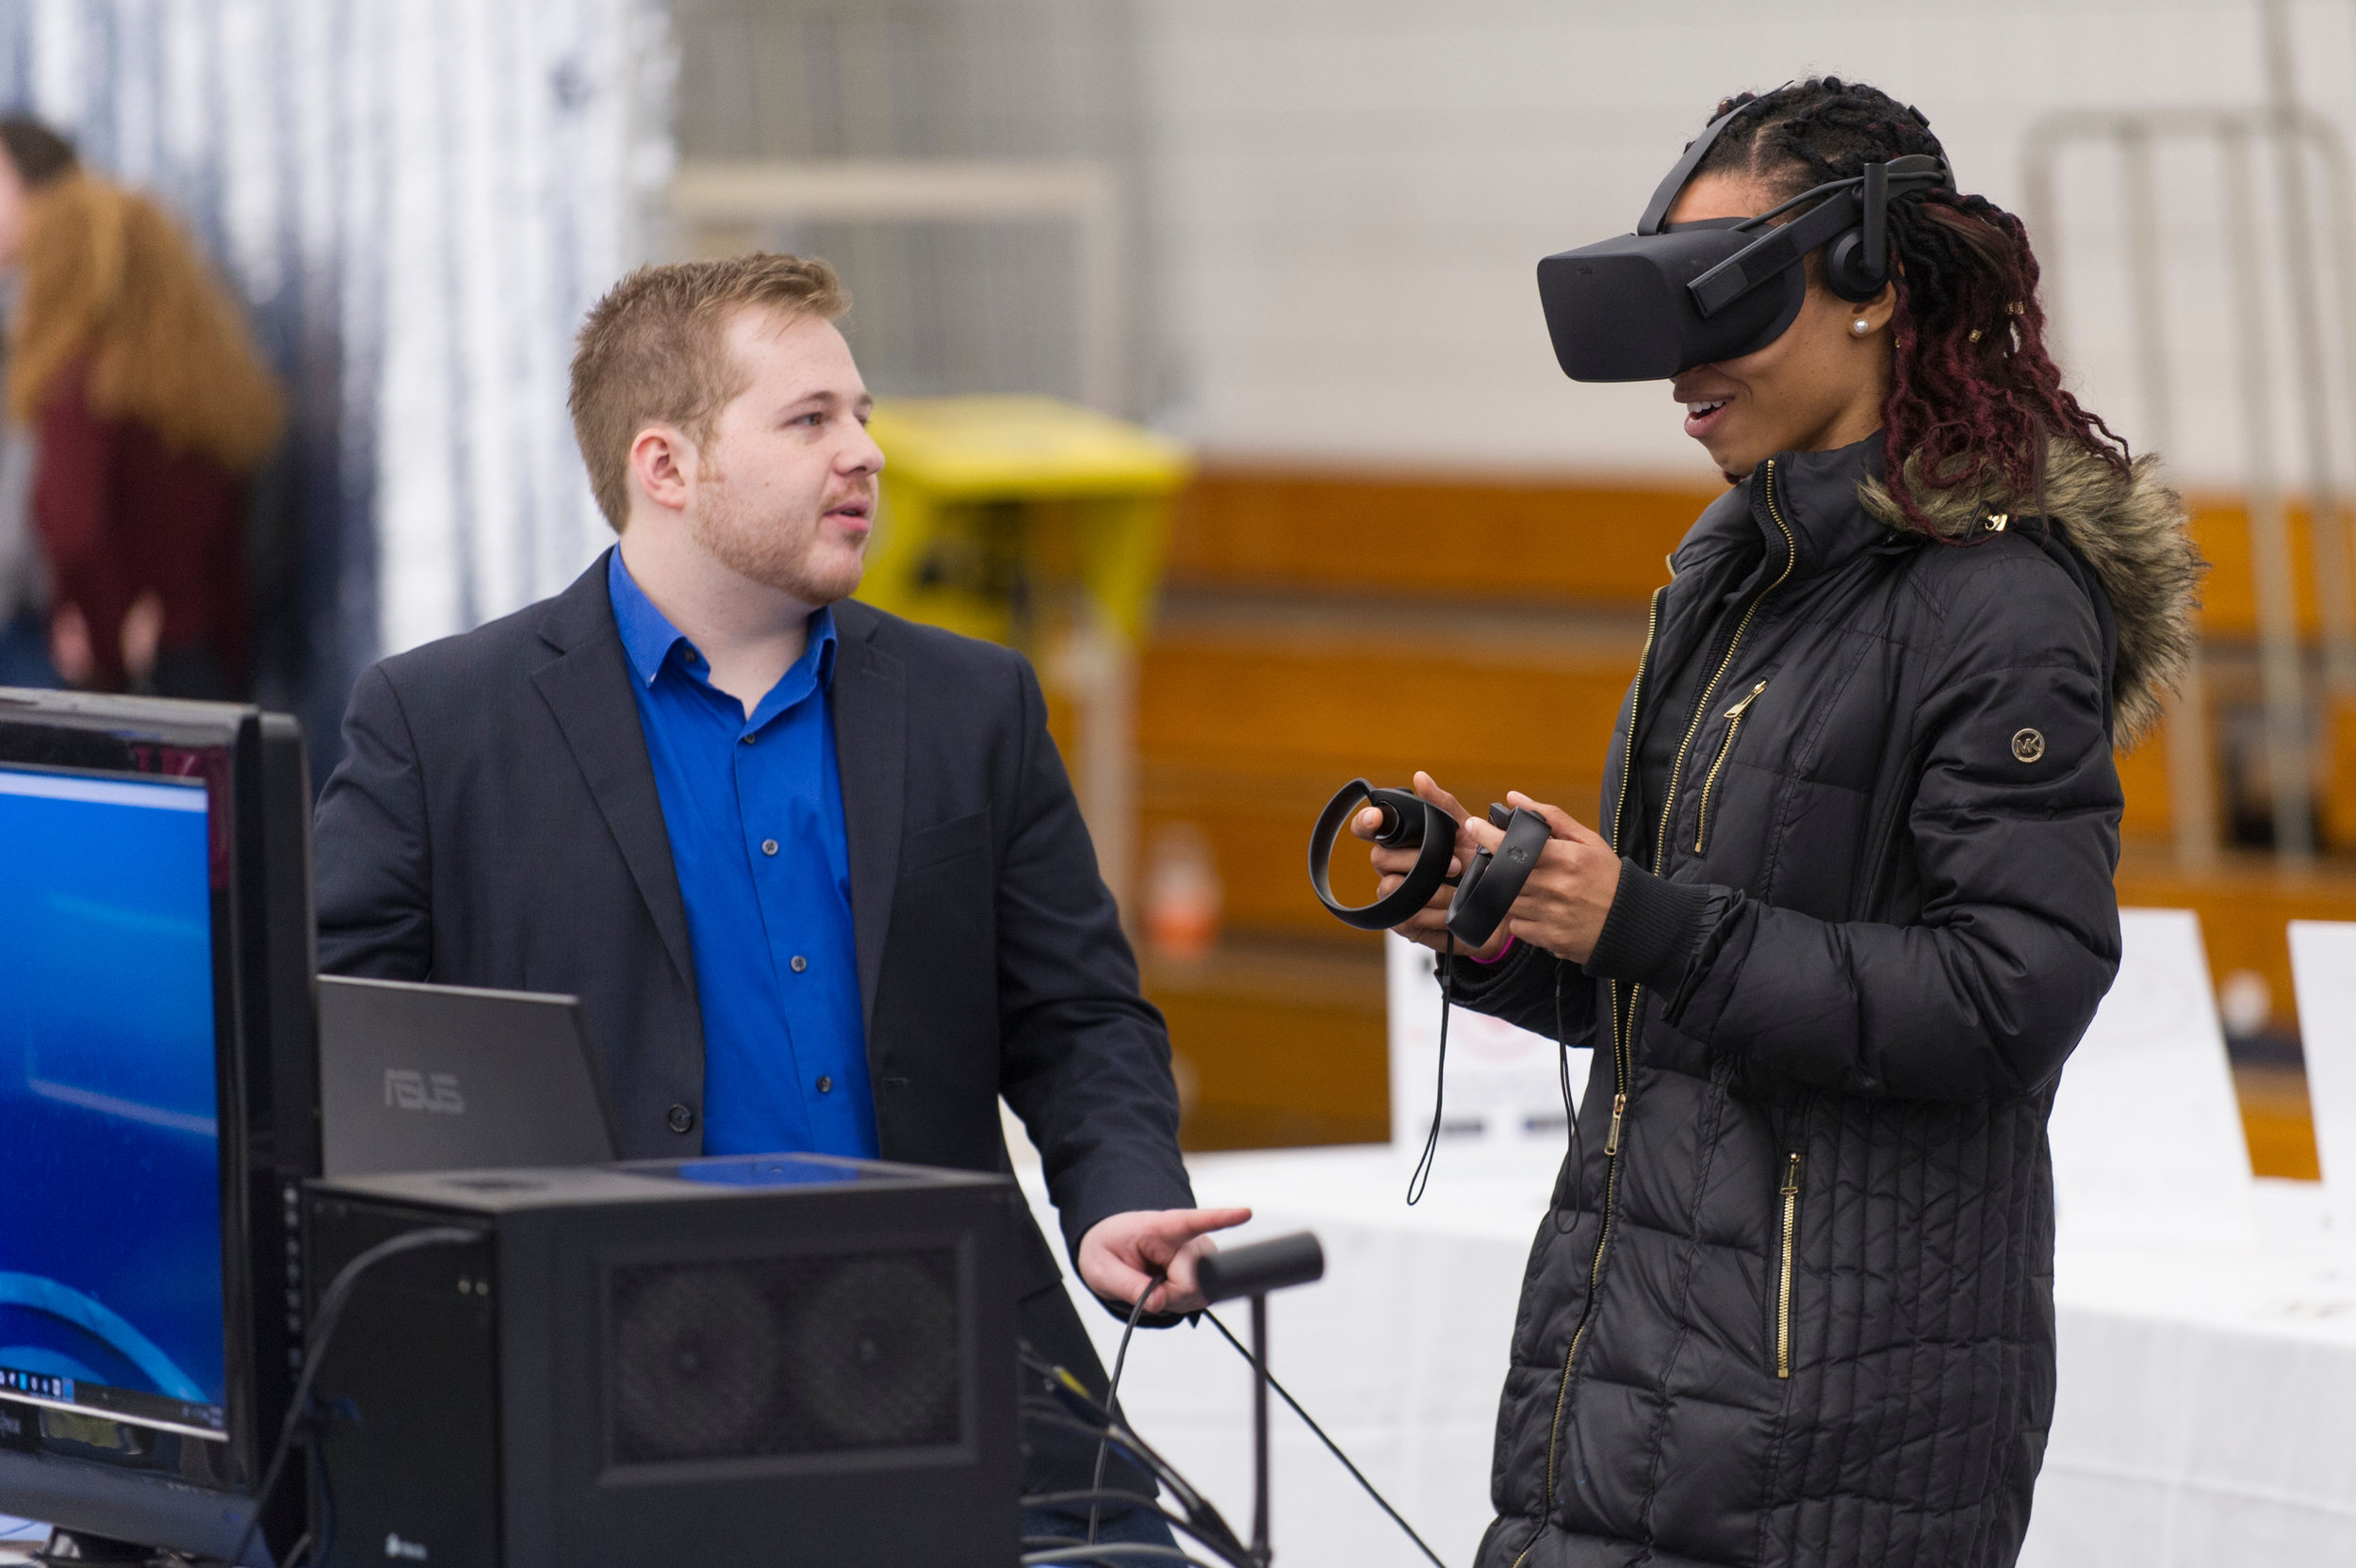 VR station at the 2018 Draper Competition.